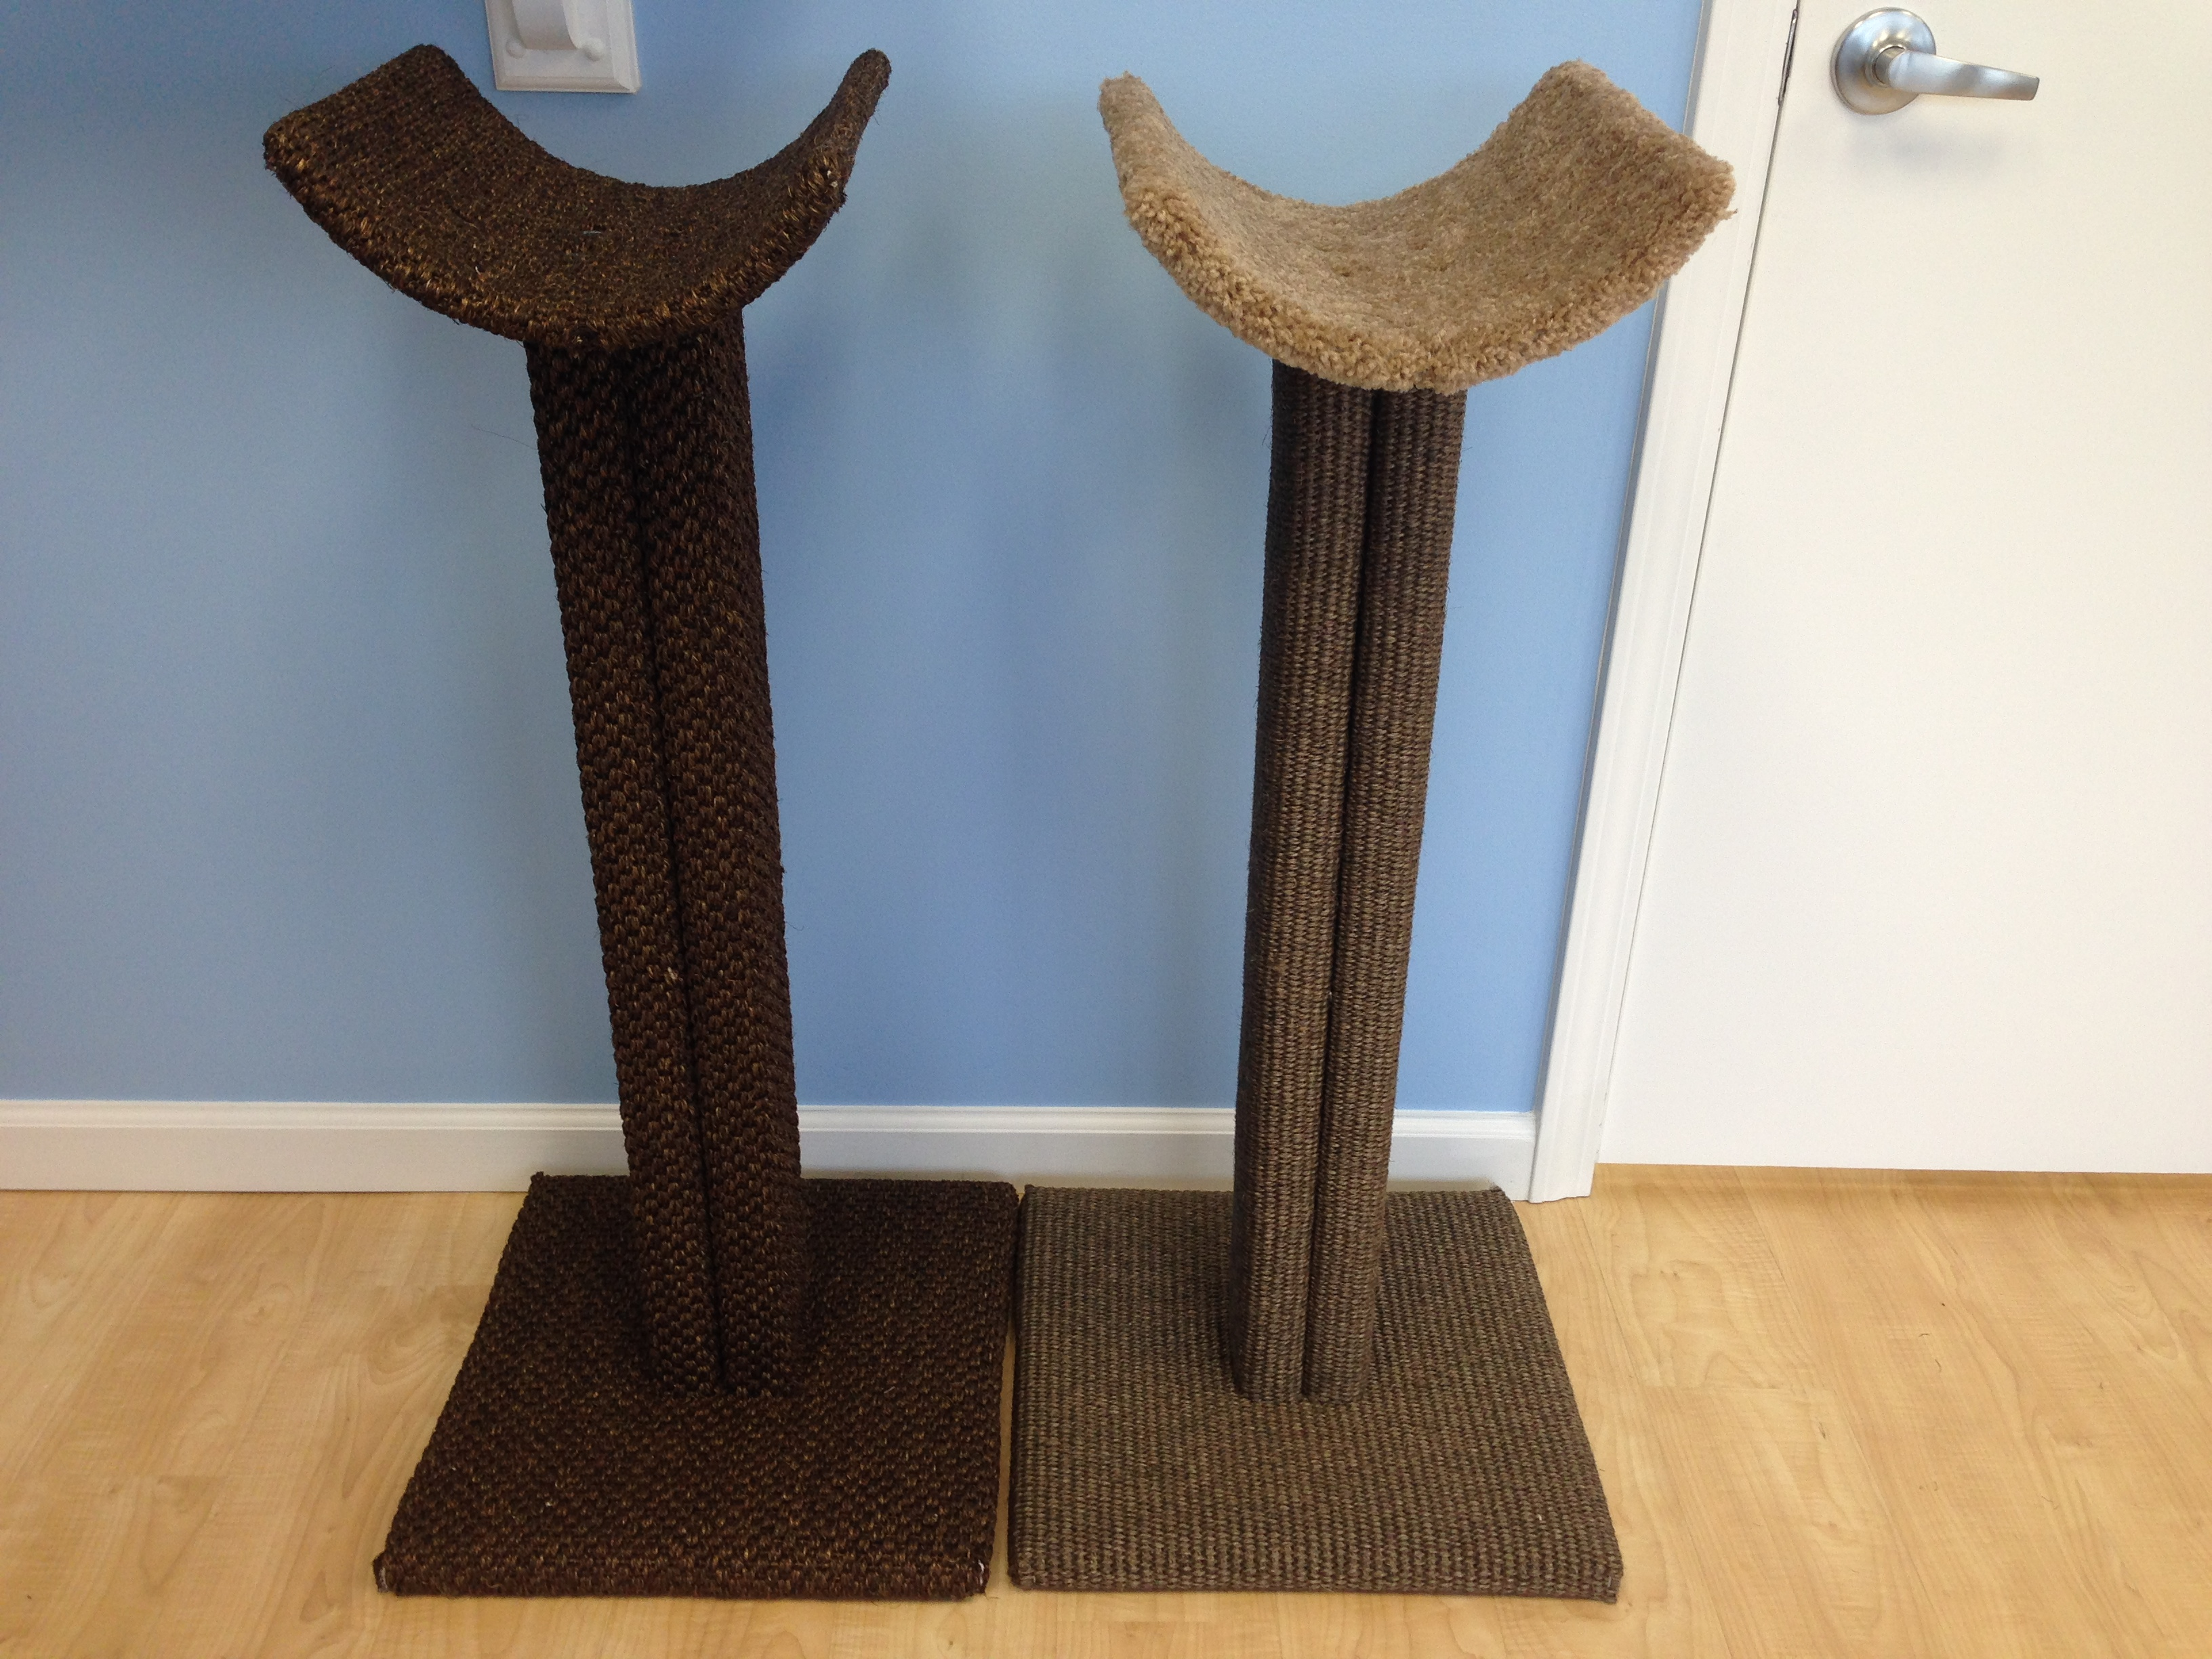 Also available in a 100% sisal option!